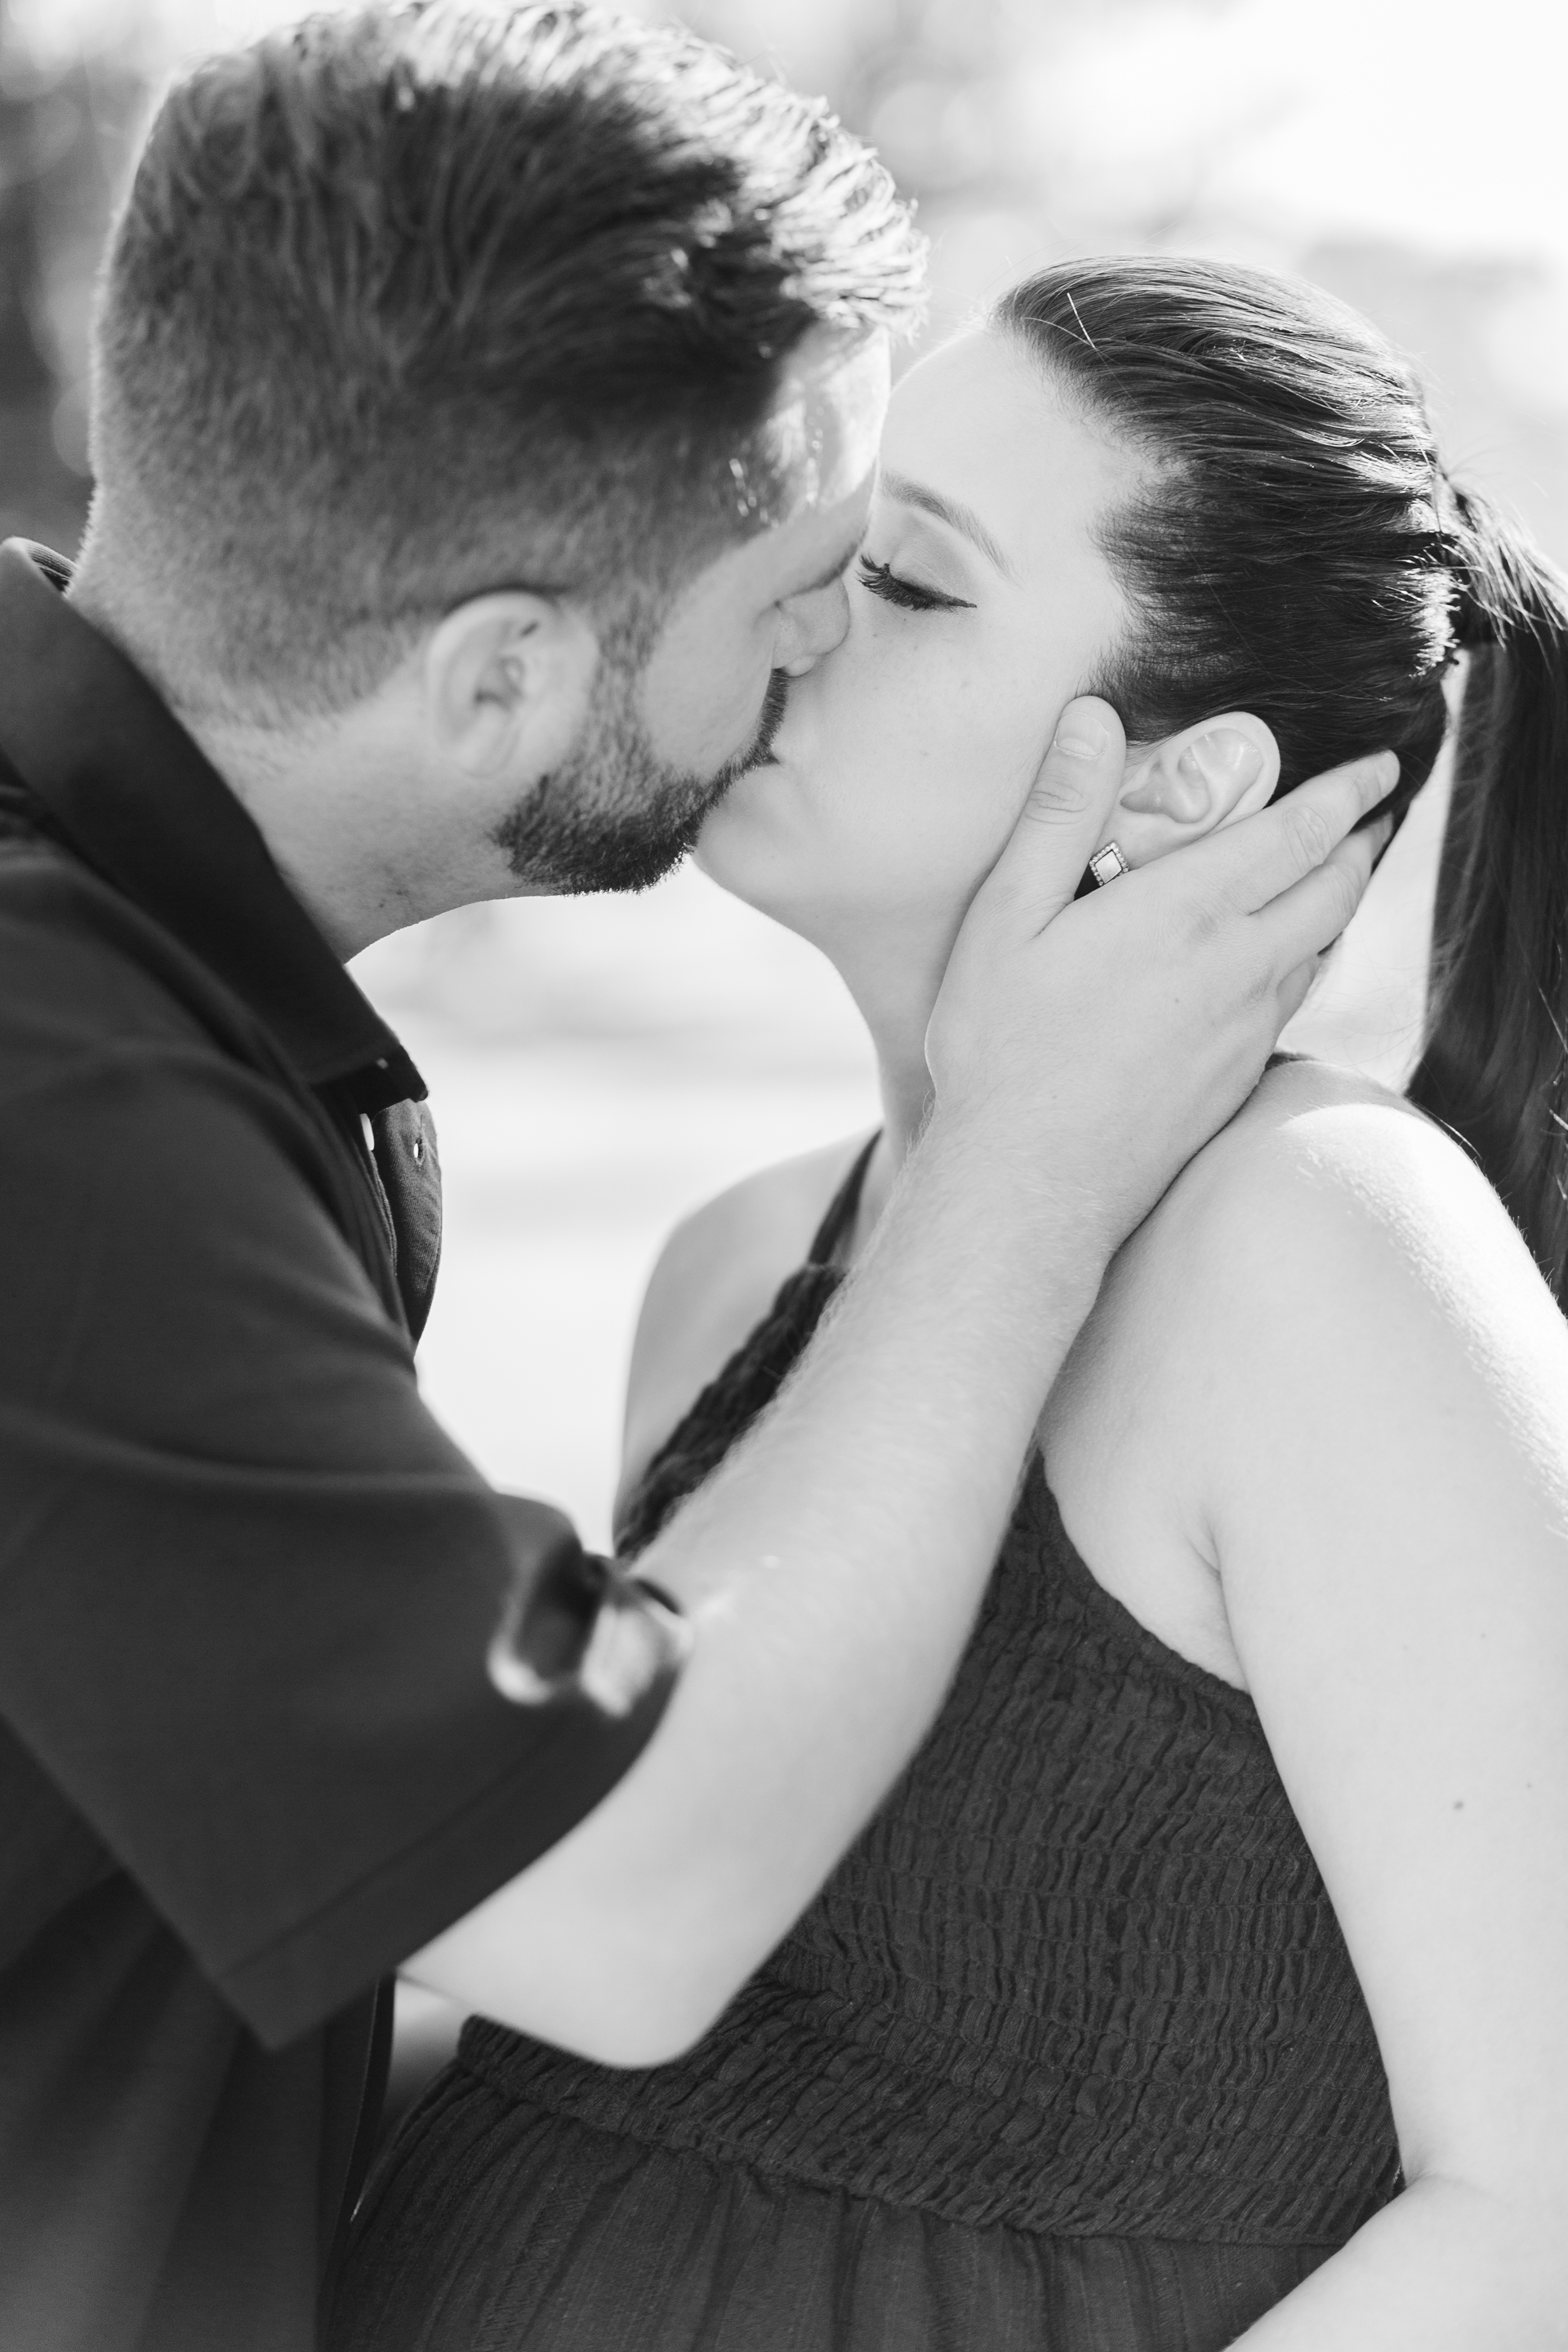 Lehigh Valley Allentown Rose Garden Maternity Photography Session Lytle Photo Co (15 of 66).jpg